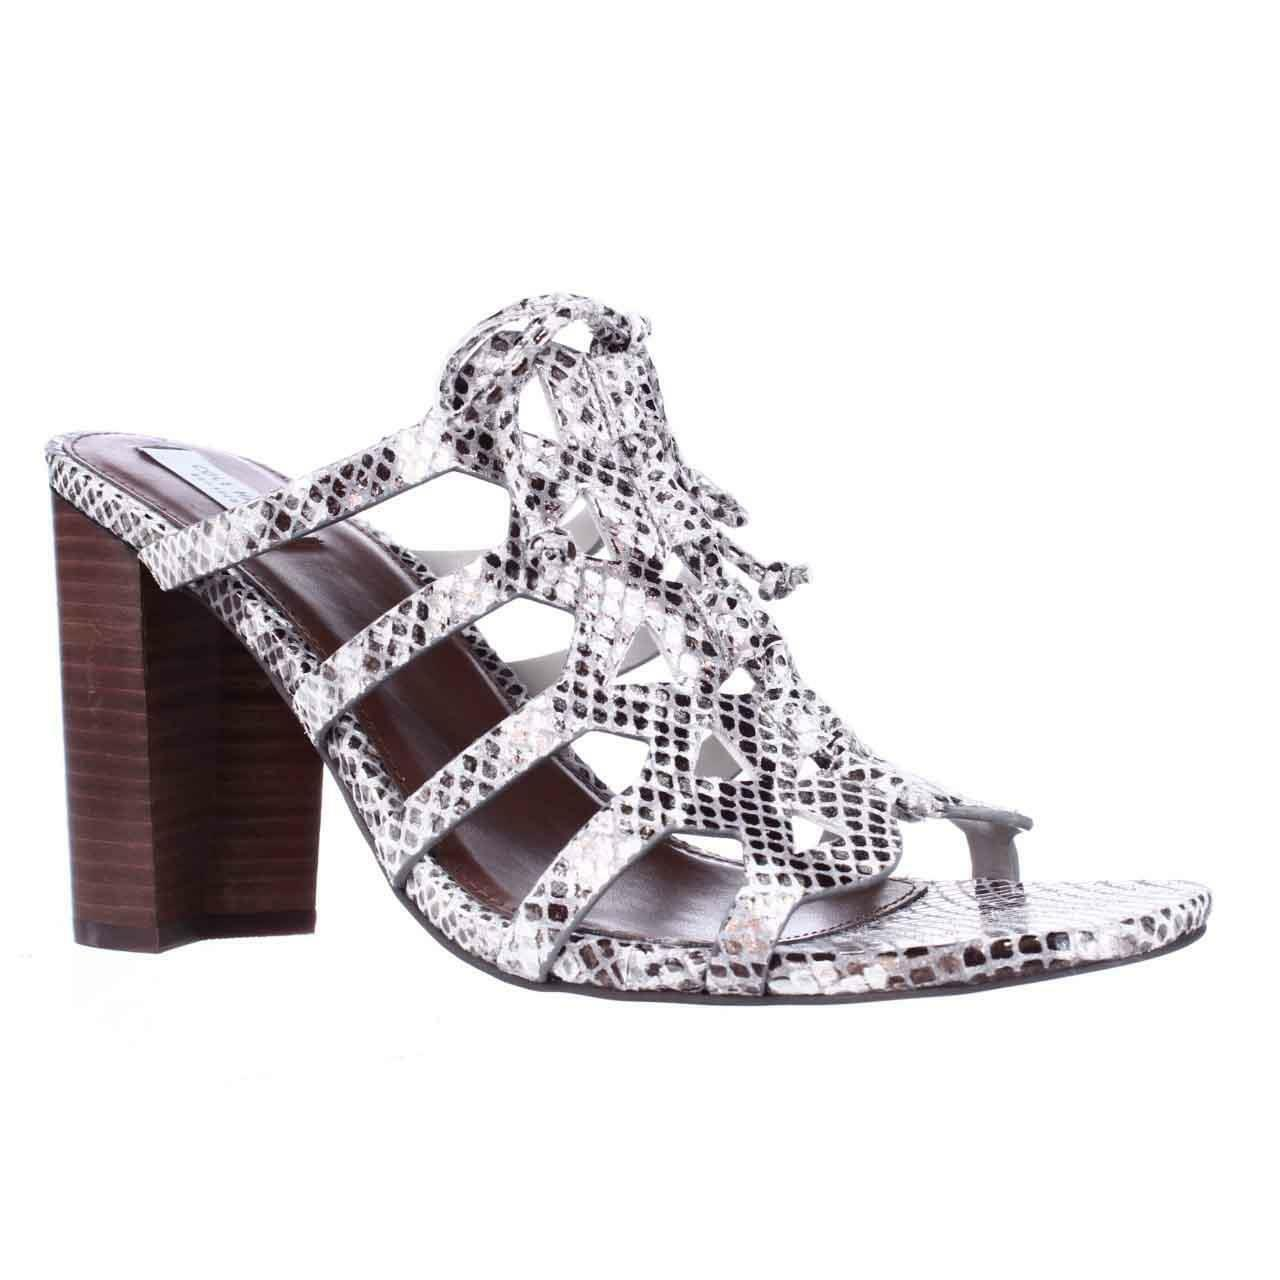 Cole Haan Claudia Heels Silver Leather Slides Sandals shoes 7 NEW IN BOX